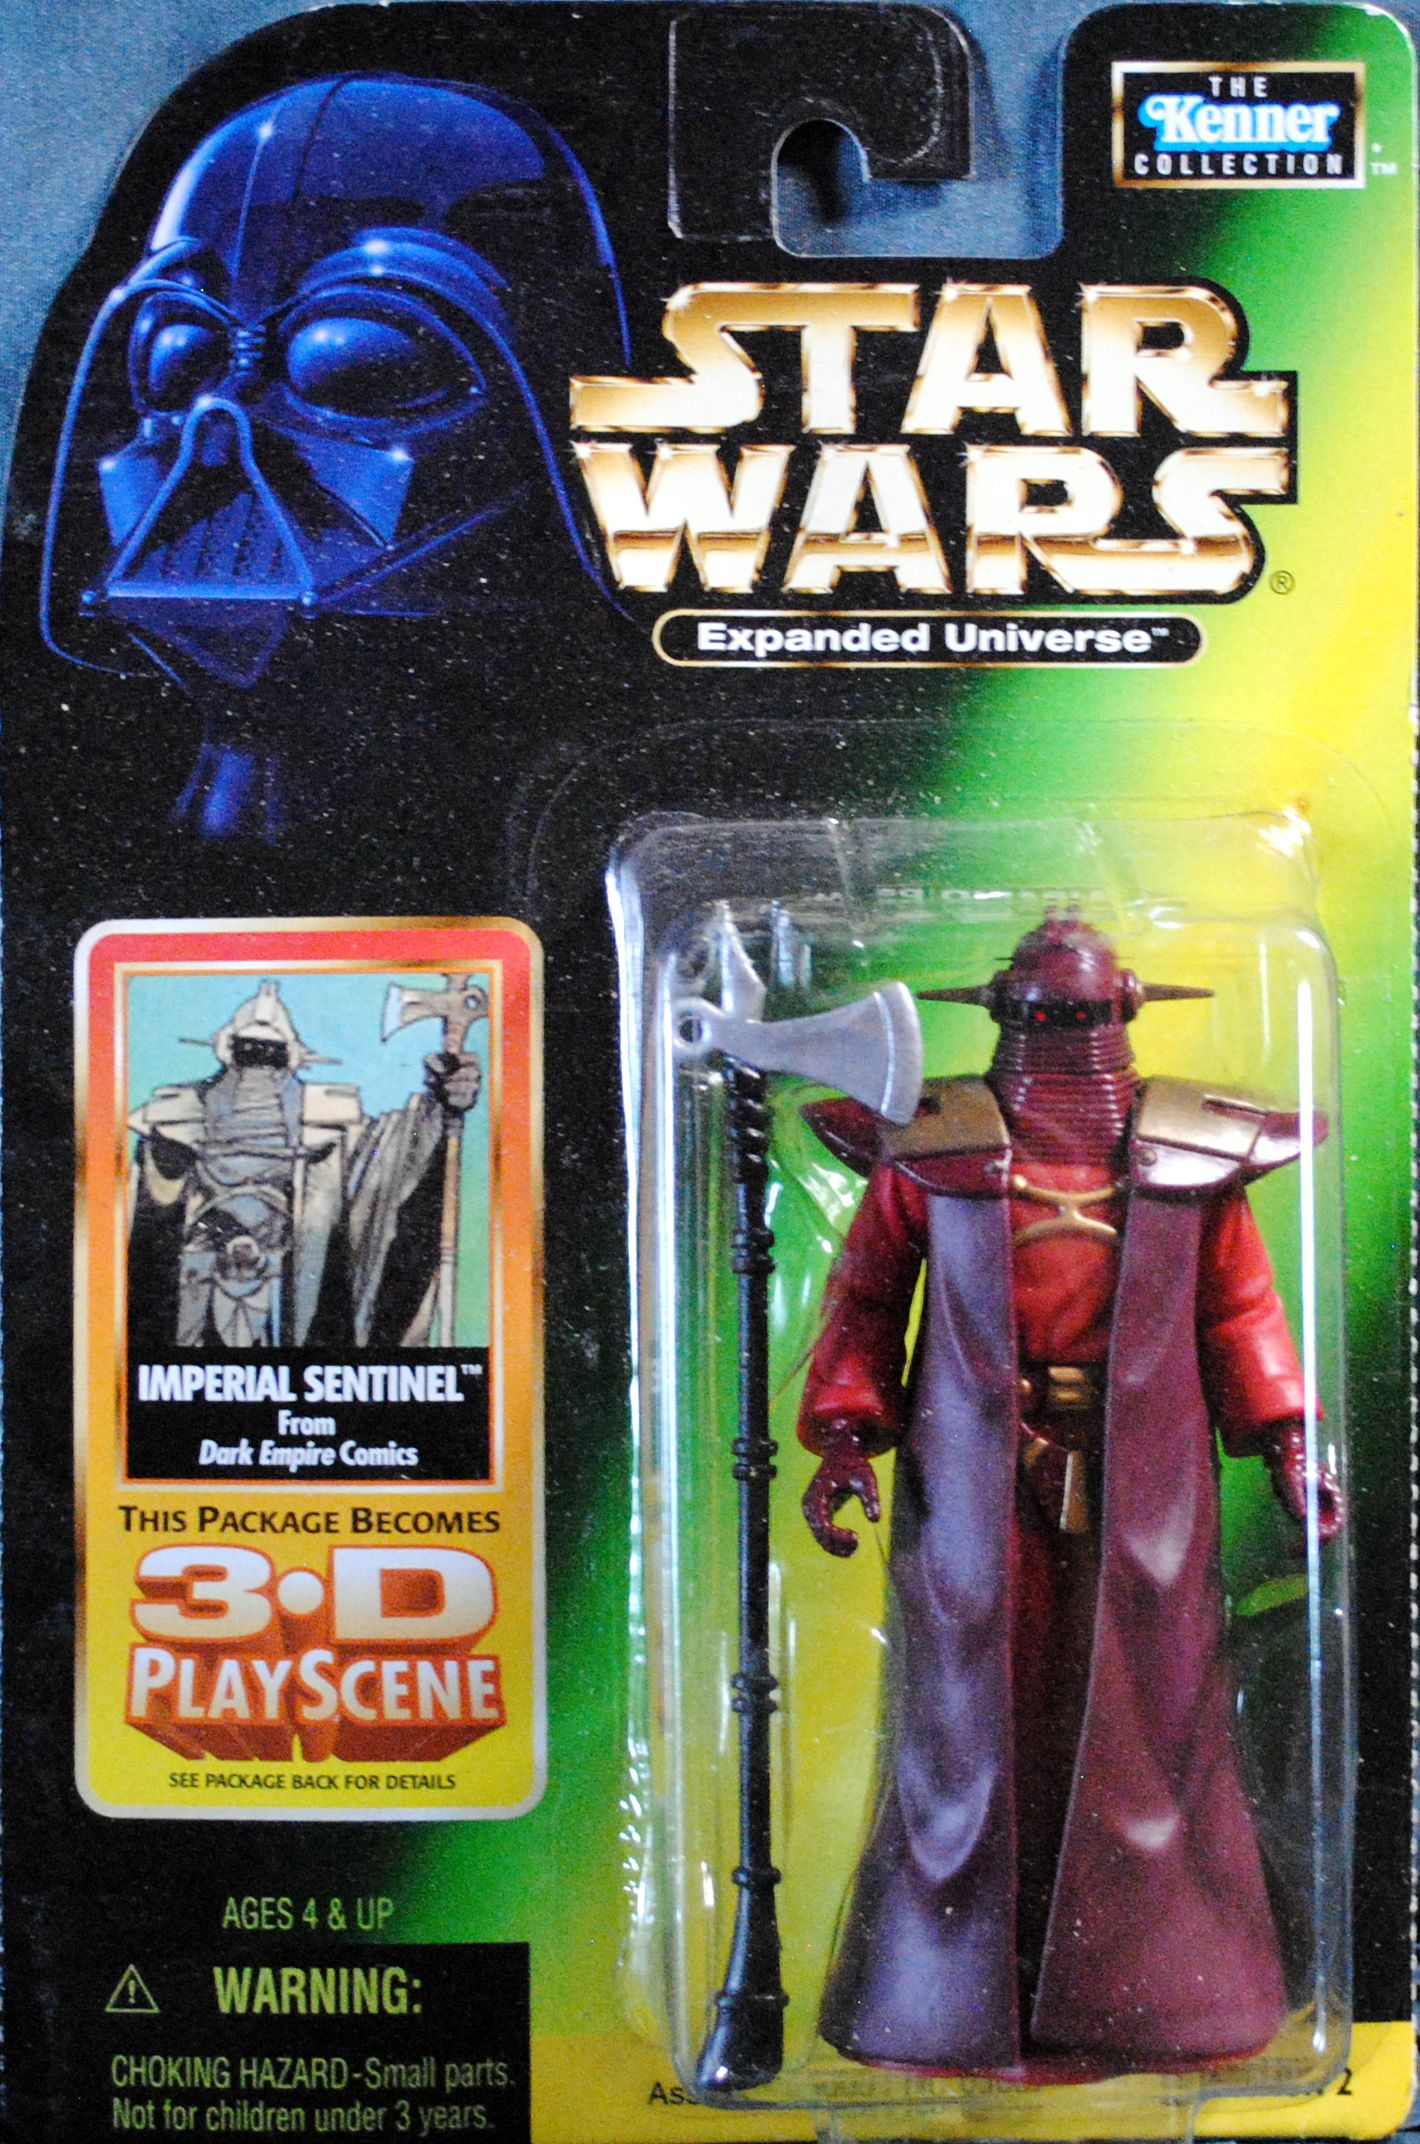 STAR WARS EXPANDED UNIVERSE-Imperial Sentinel Dark Empire